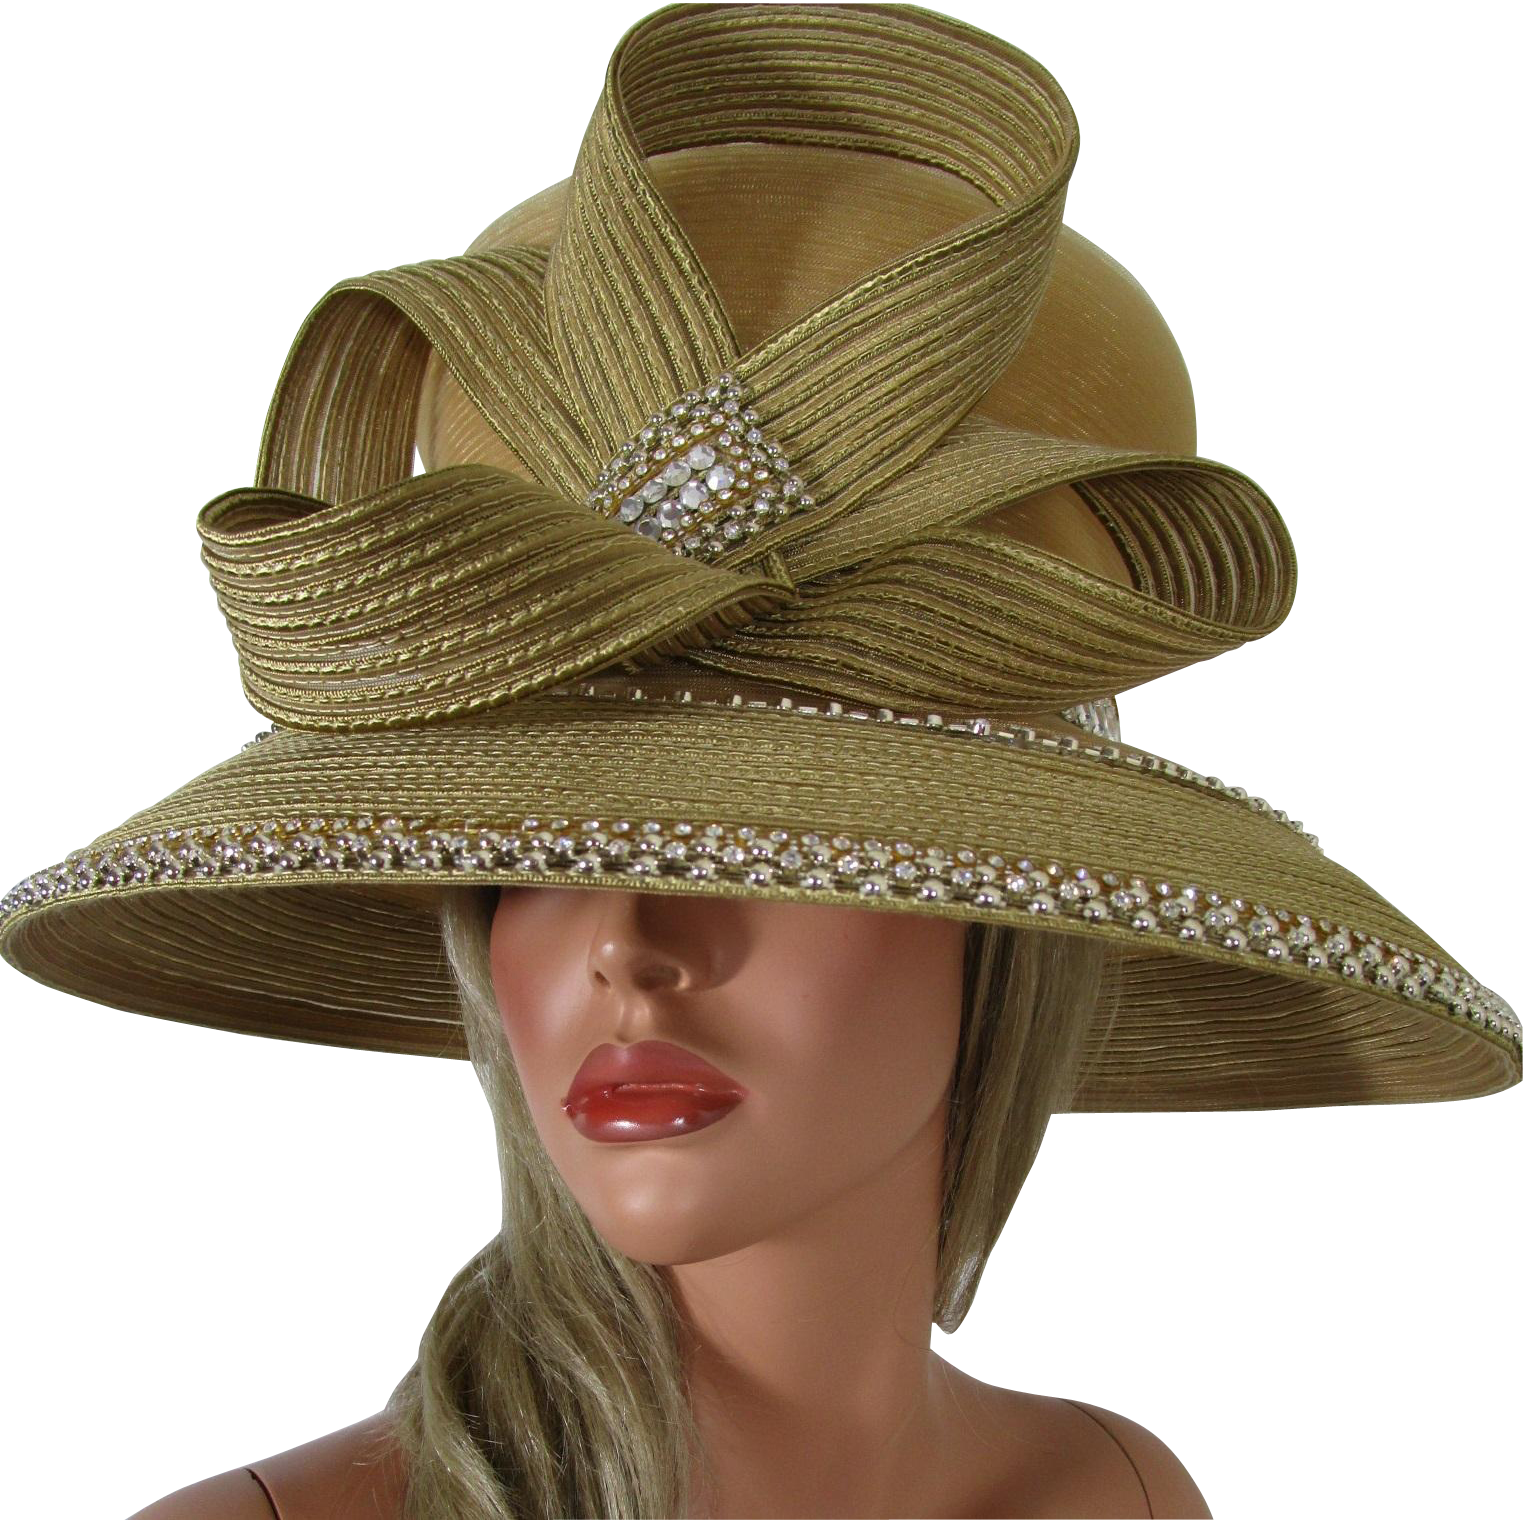 Church hat png. Shellie mcdowell couture derby